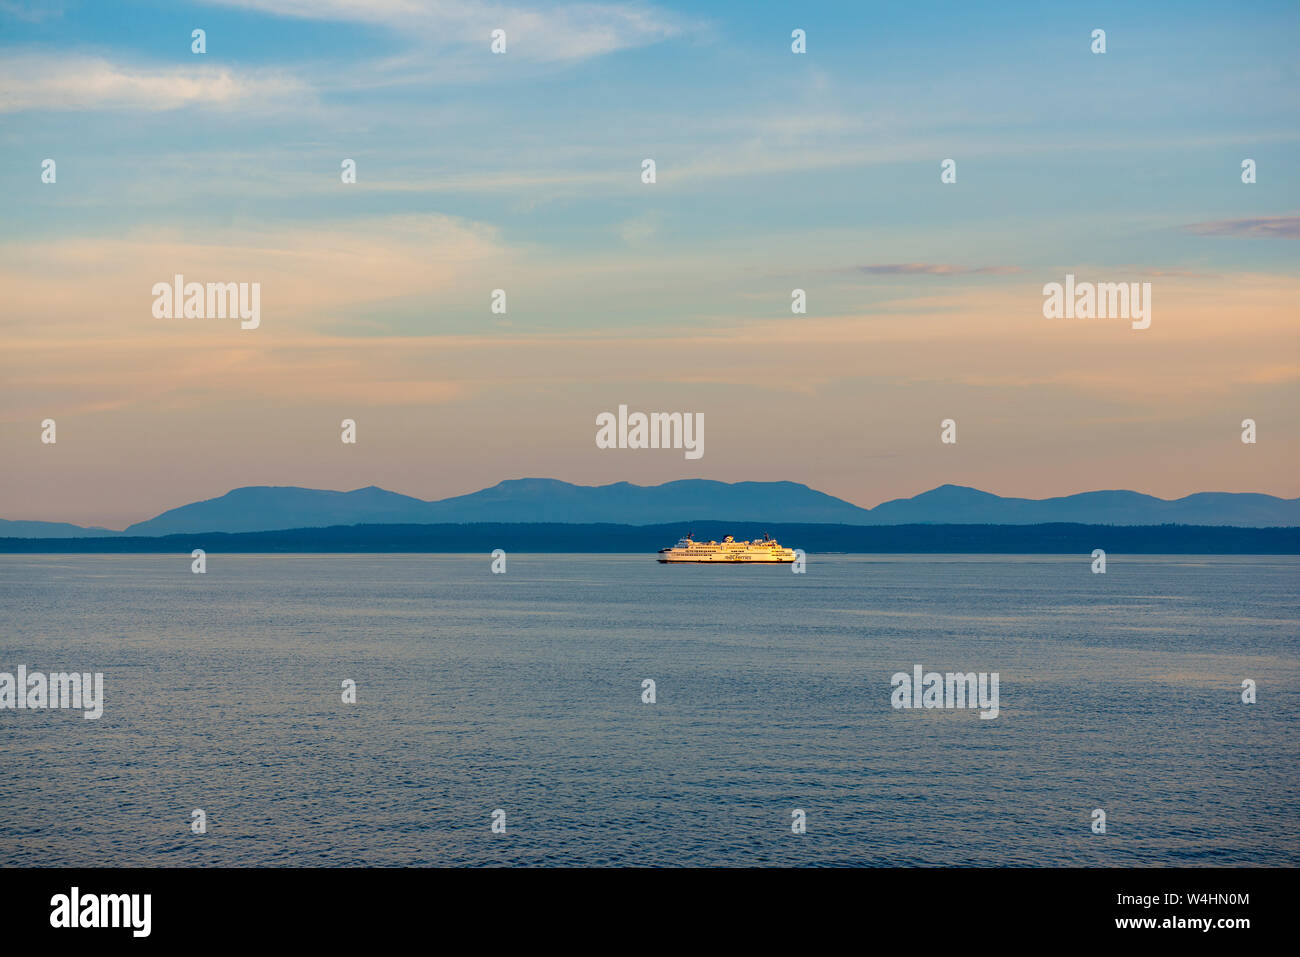 NANAIMO, BC - JUNE 19, 2018: A BC ferry sailing at sunset in Nanaimo. BC ferries provides all major ferry services for coastal and island communities Stock Photo